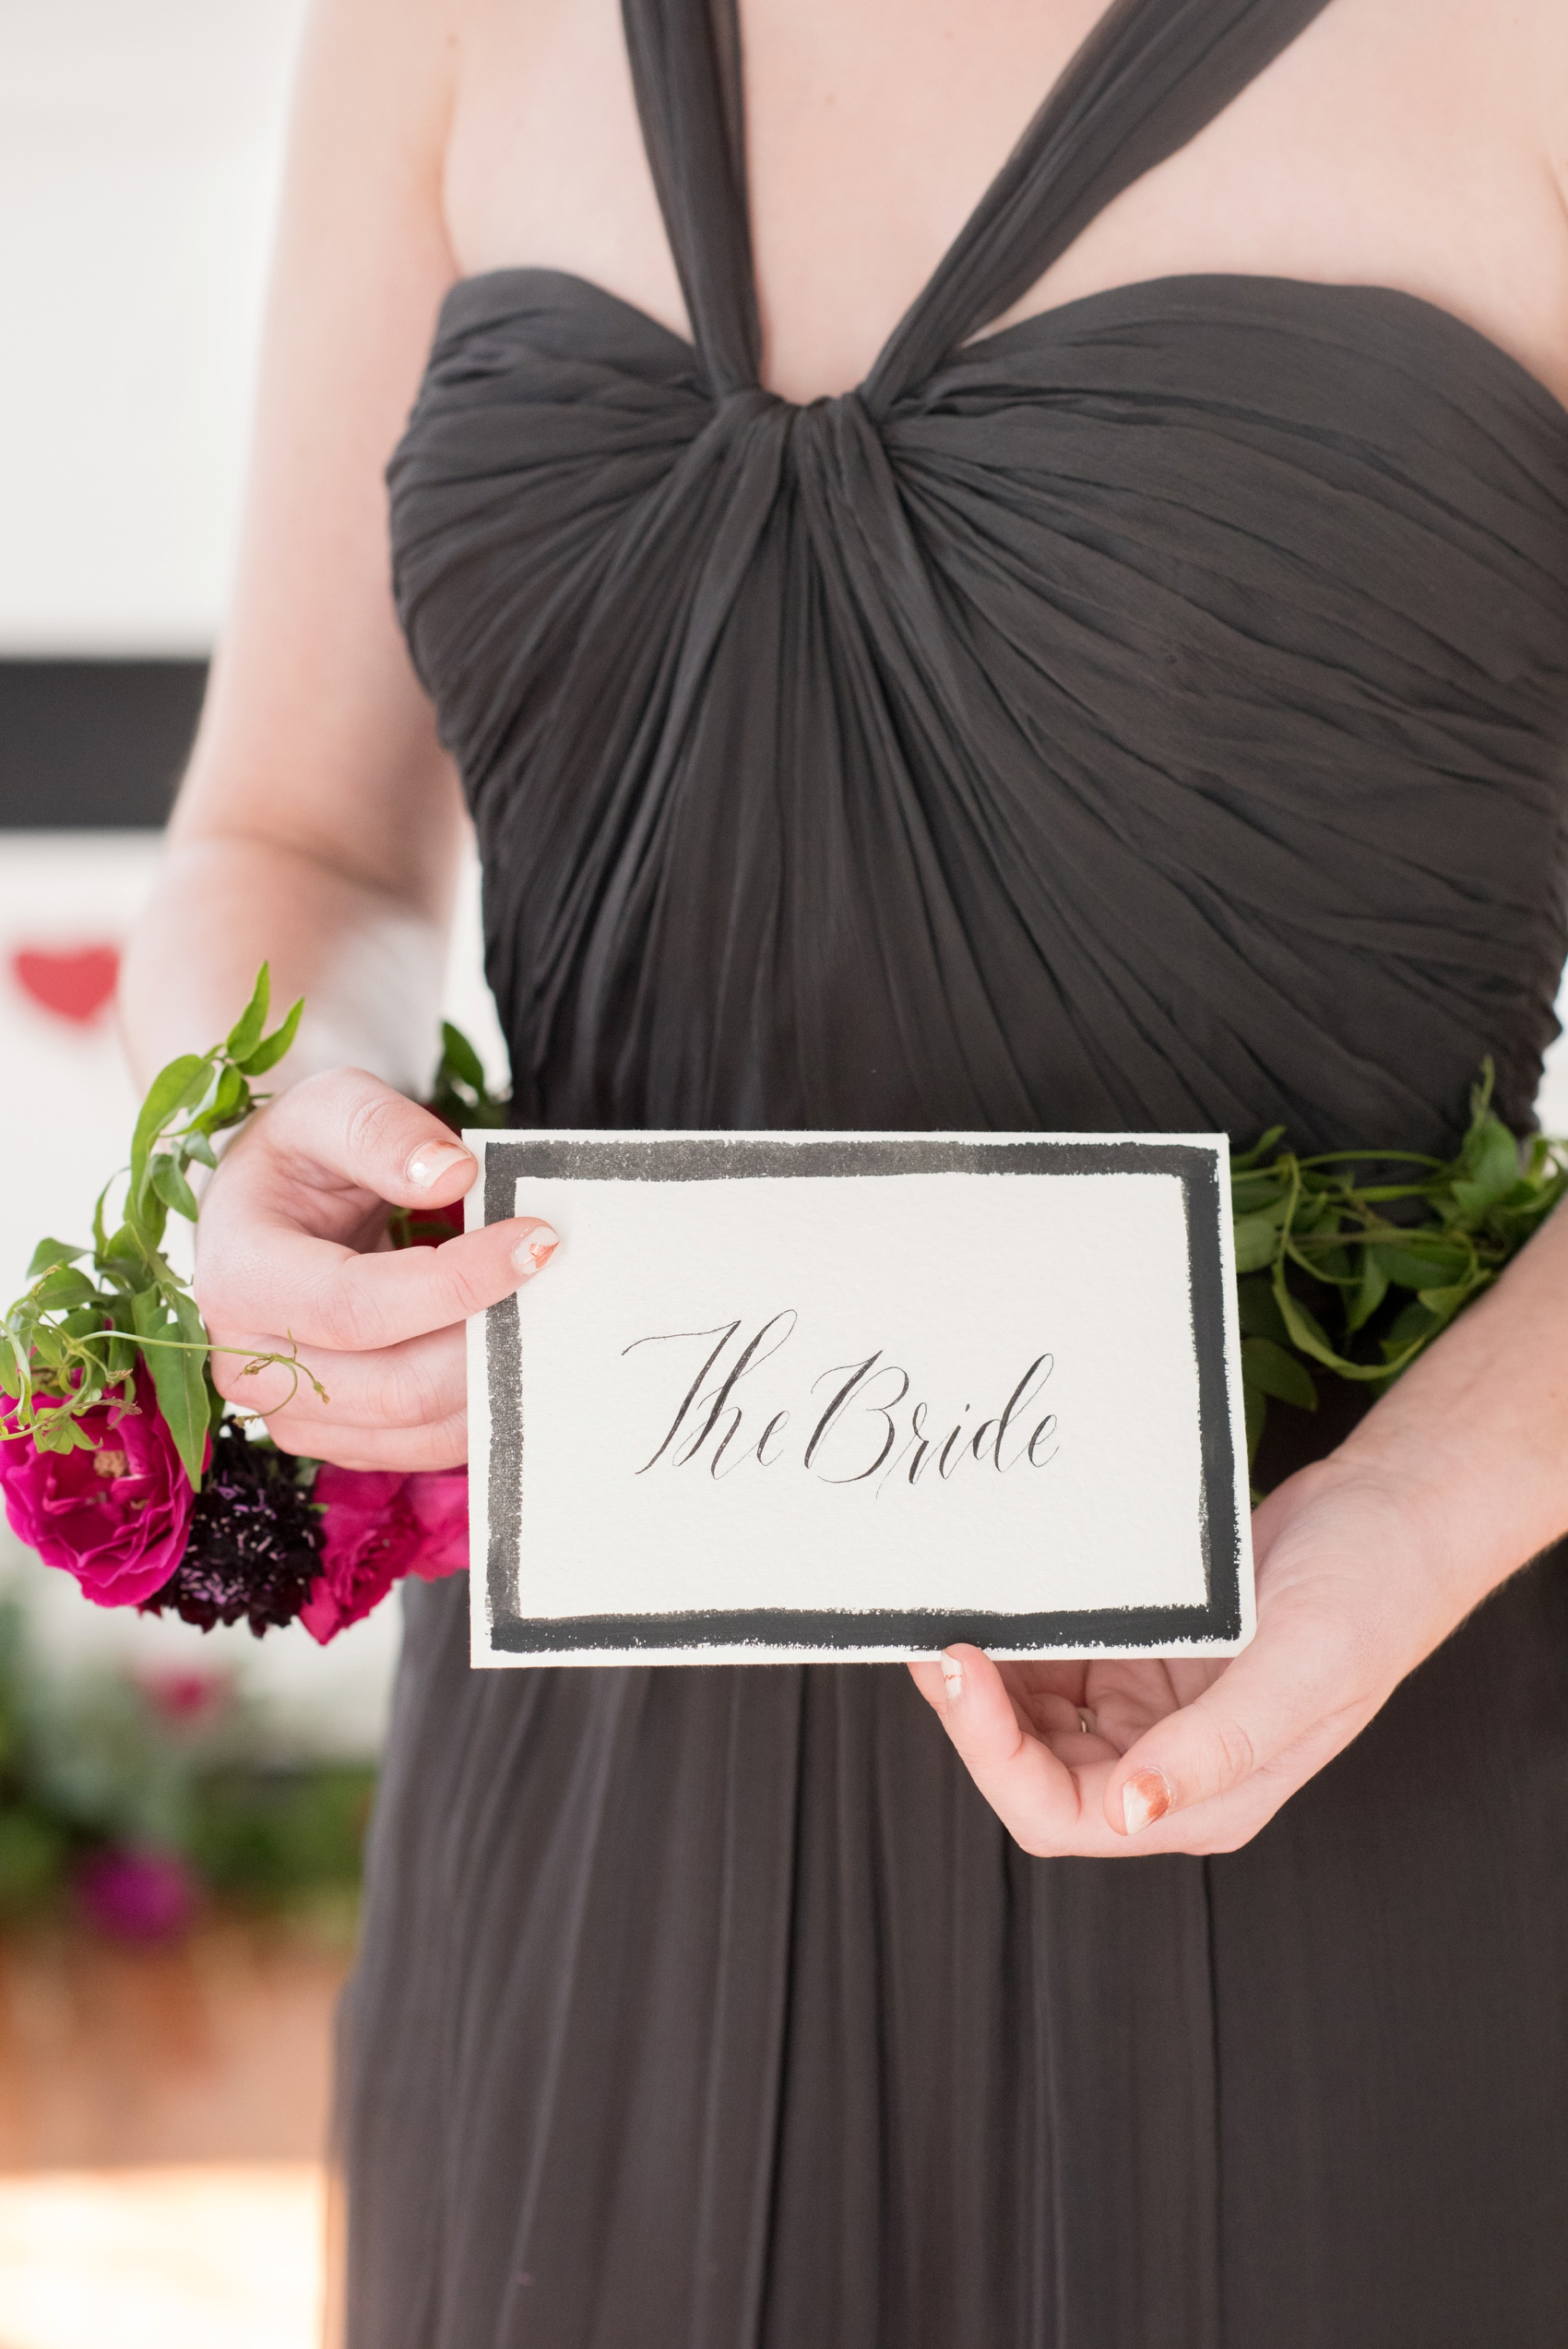 Mim's House NC proposal photos by Mikkel Paige Photography. Calligraphy love letter for the bride.